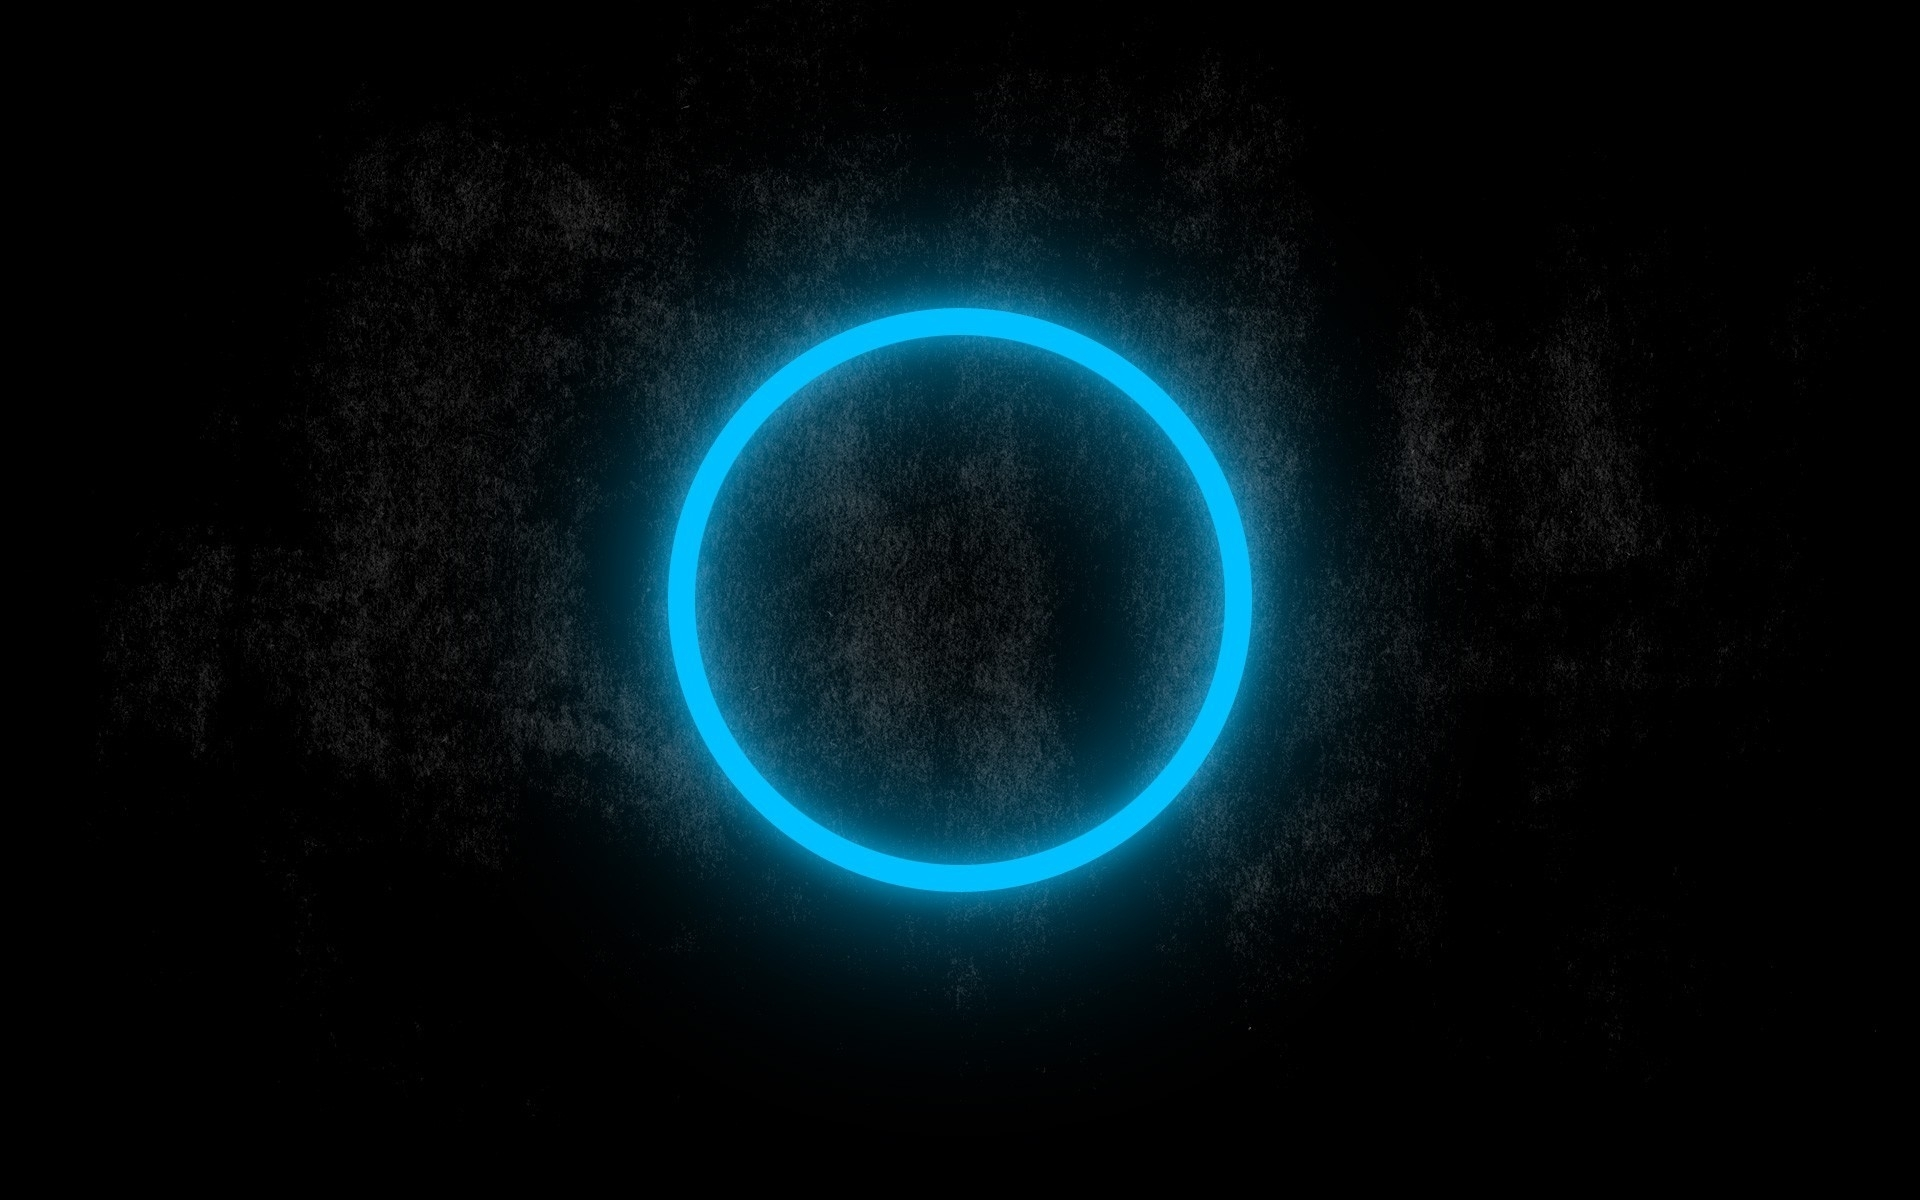 10 New Neon Blue And Black Backgrounds FULL HD 1080p For PC Desktop